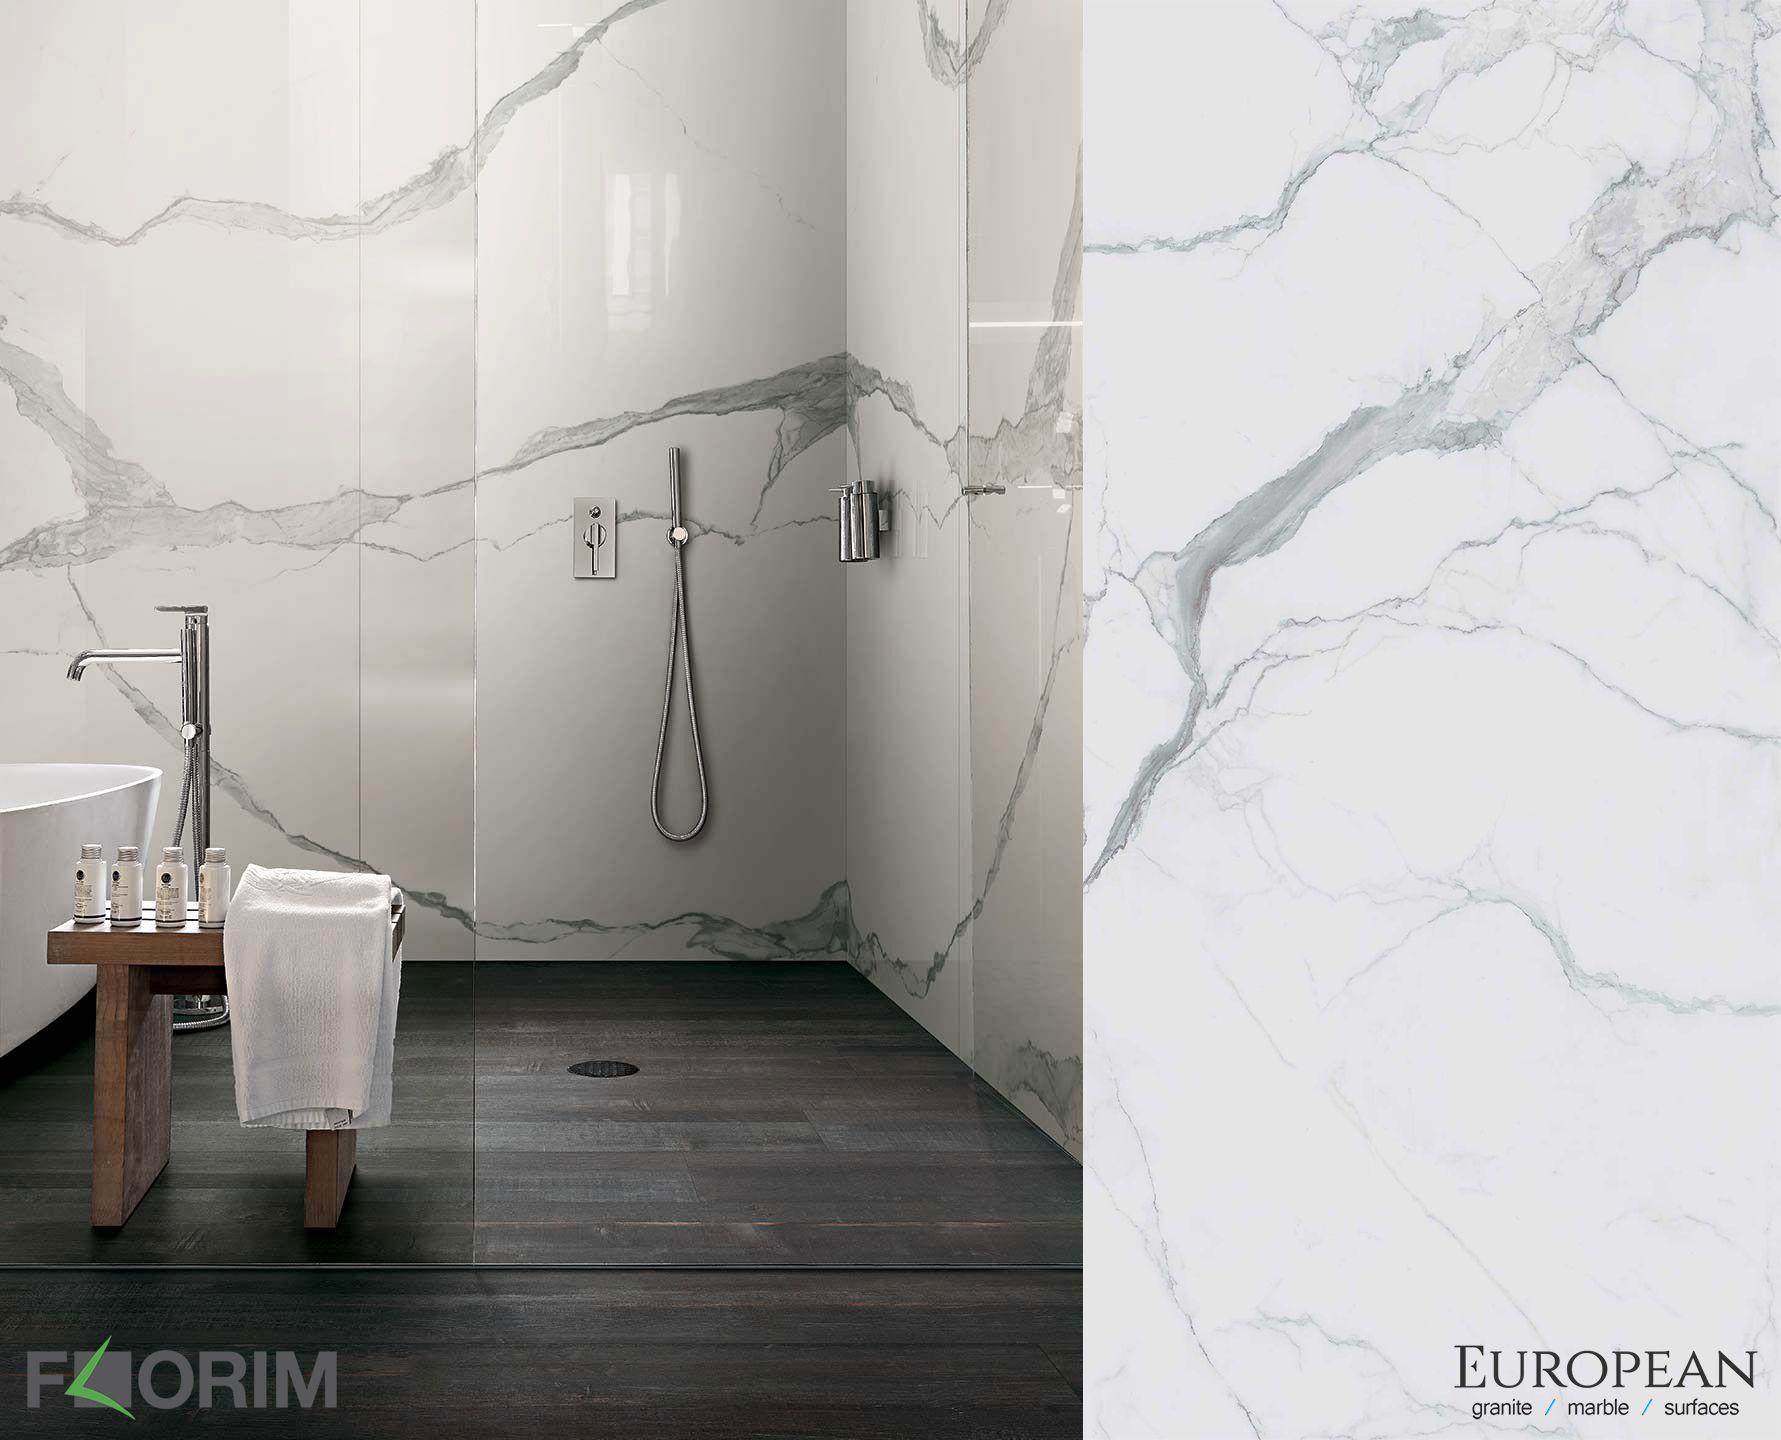 Florim - our new luxury porcelain tile collection - comes in a ...